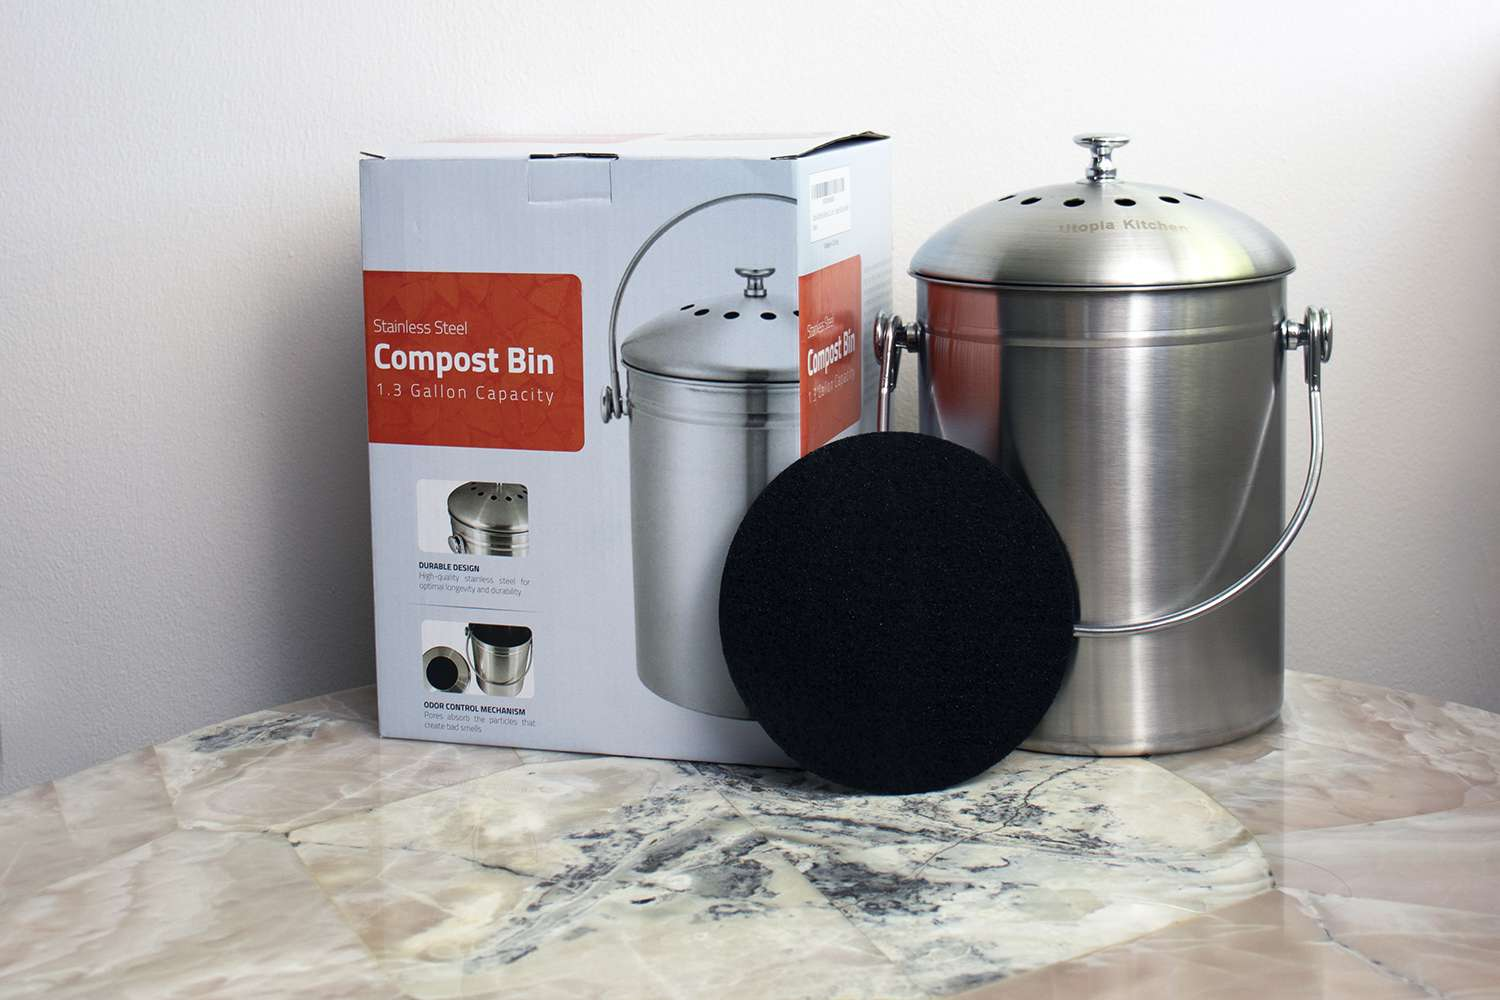 Utopia Kitchen Stainless Steel Compost Bin Review